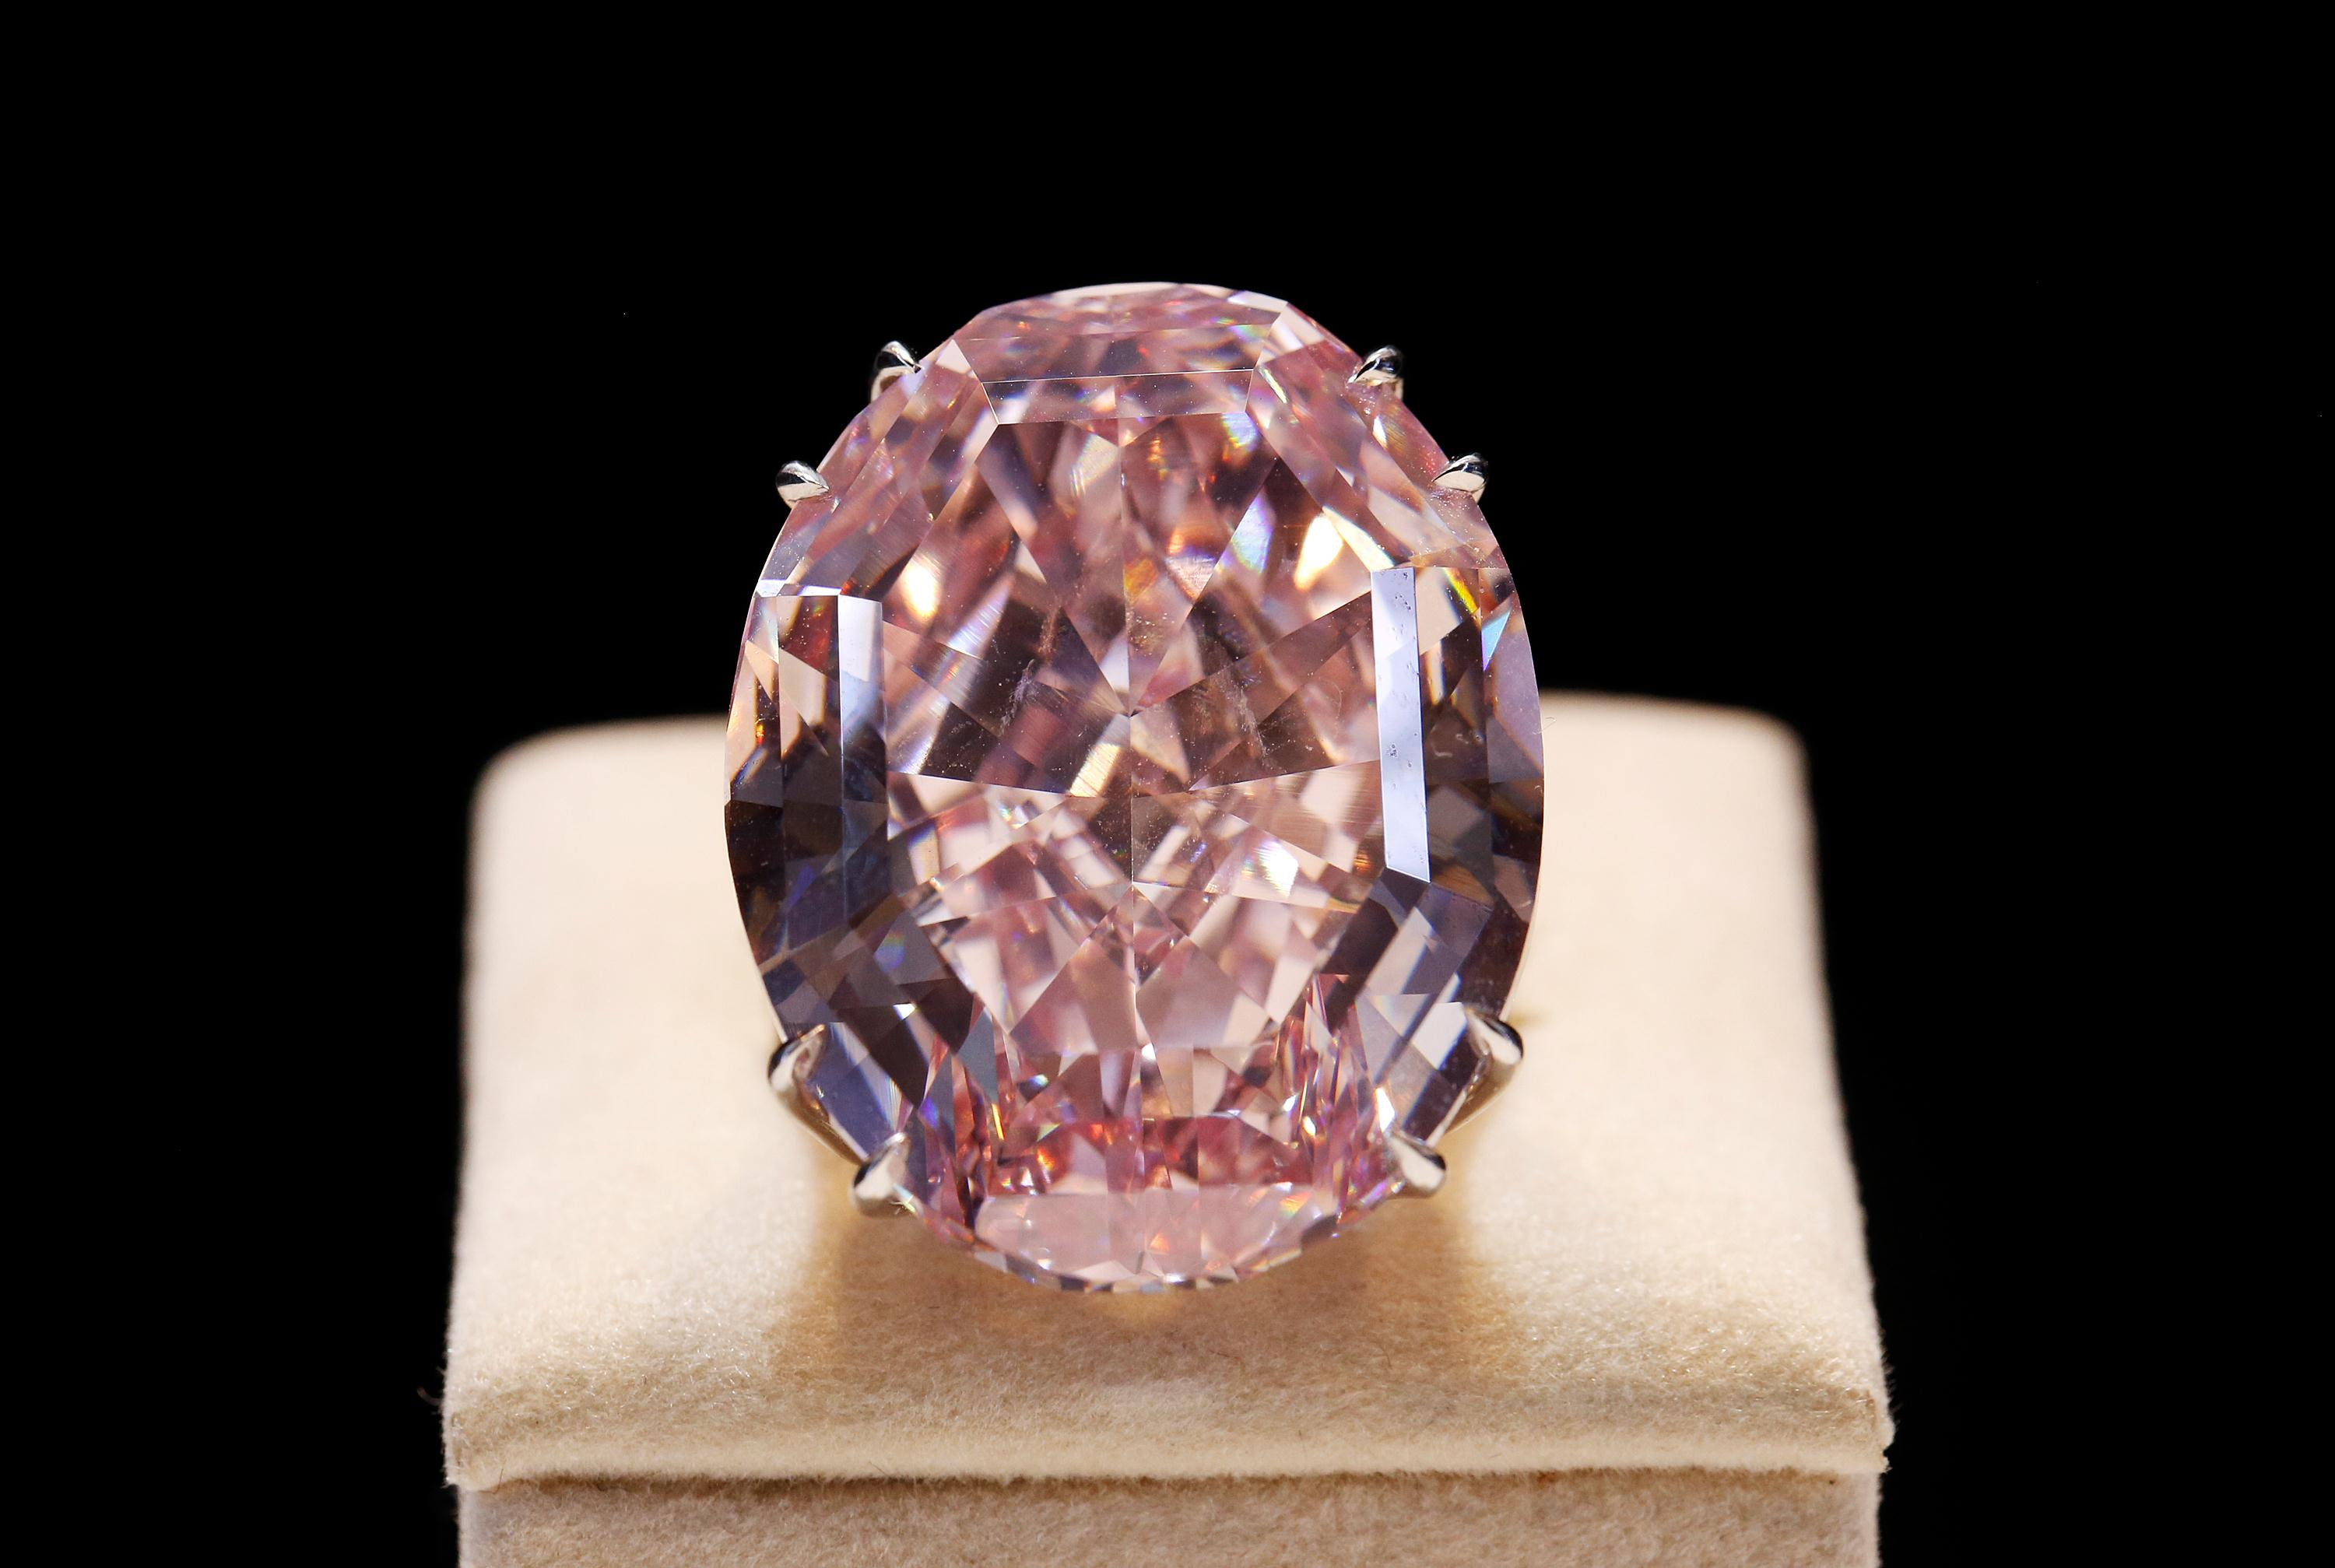 Major Reasons To Choose Pink Diamond Investments